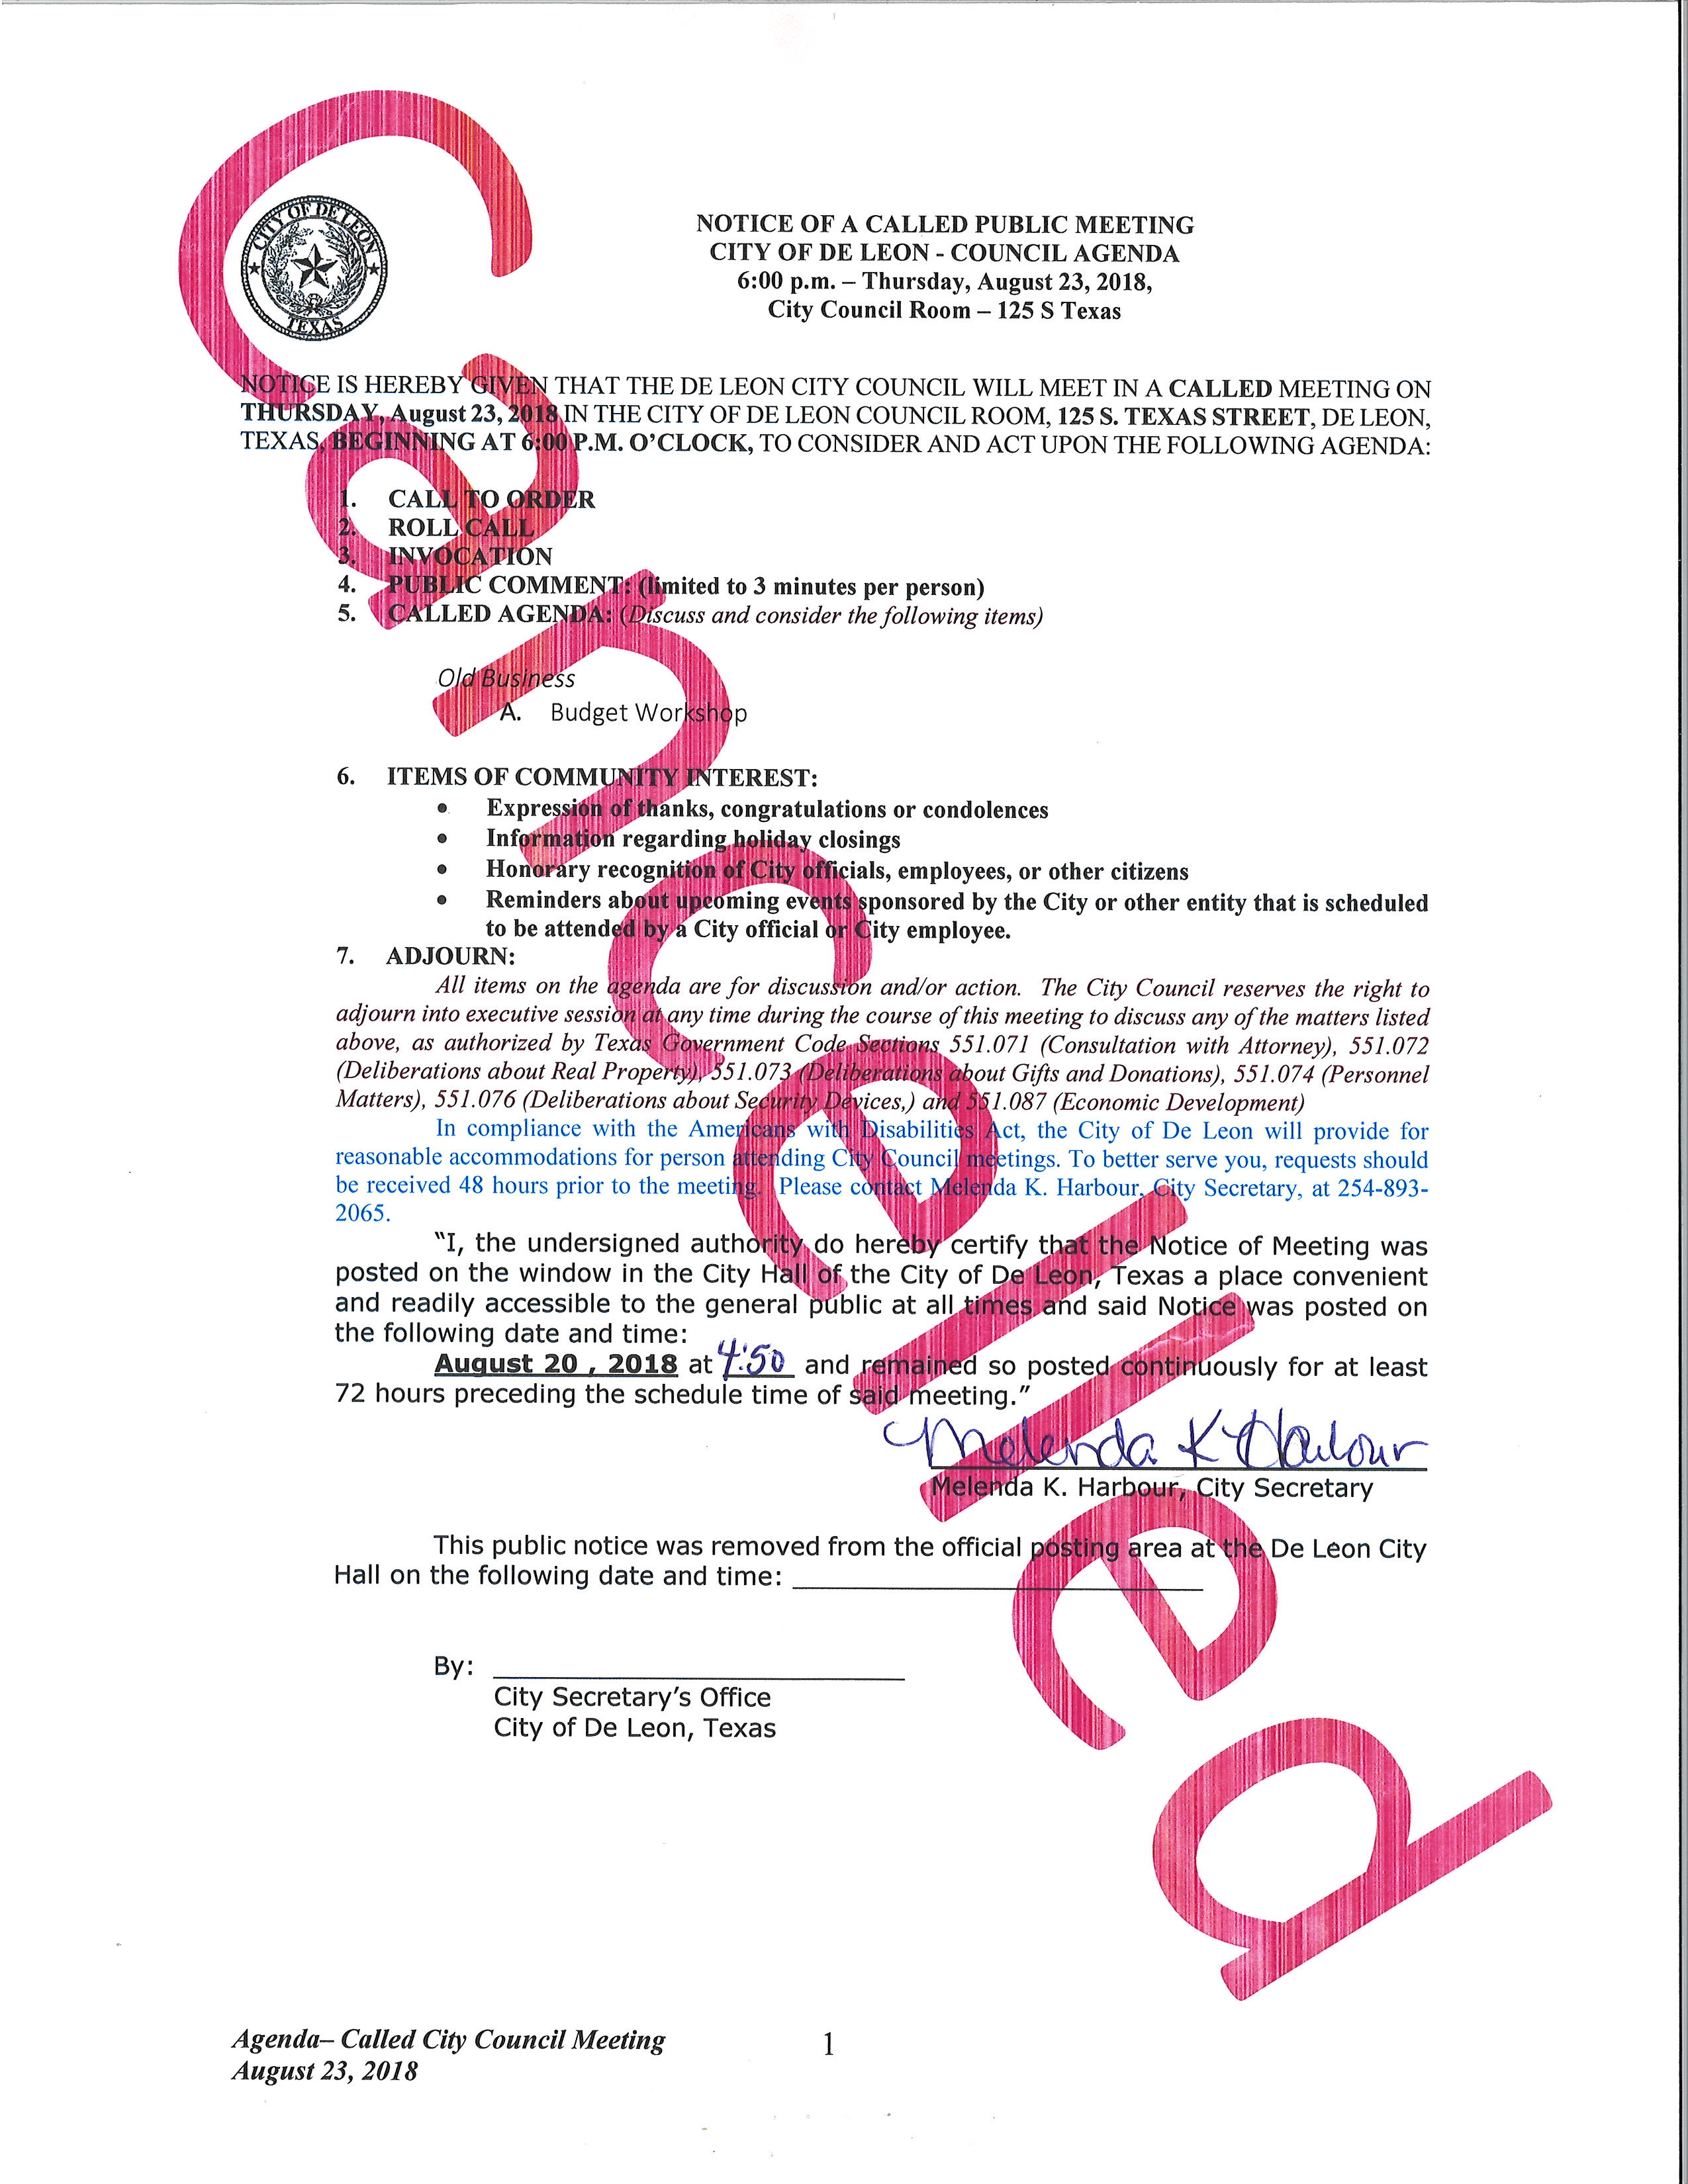 update meeting cancelled called city council meeting agenda for